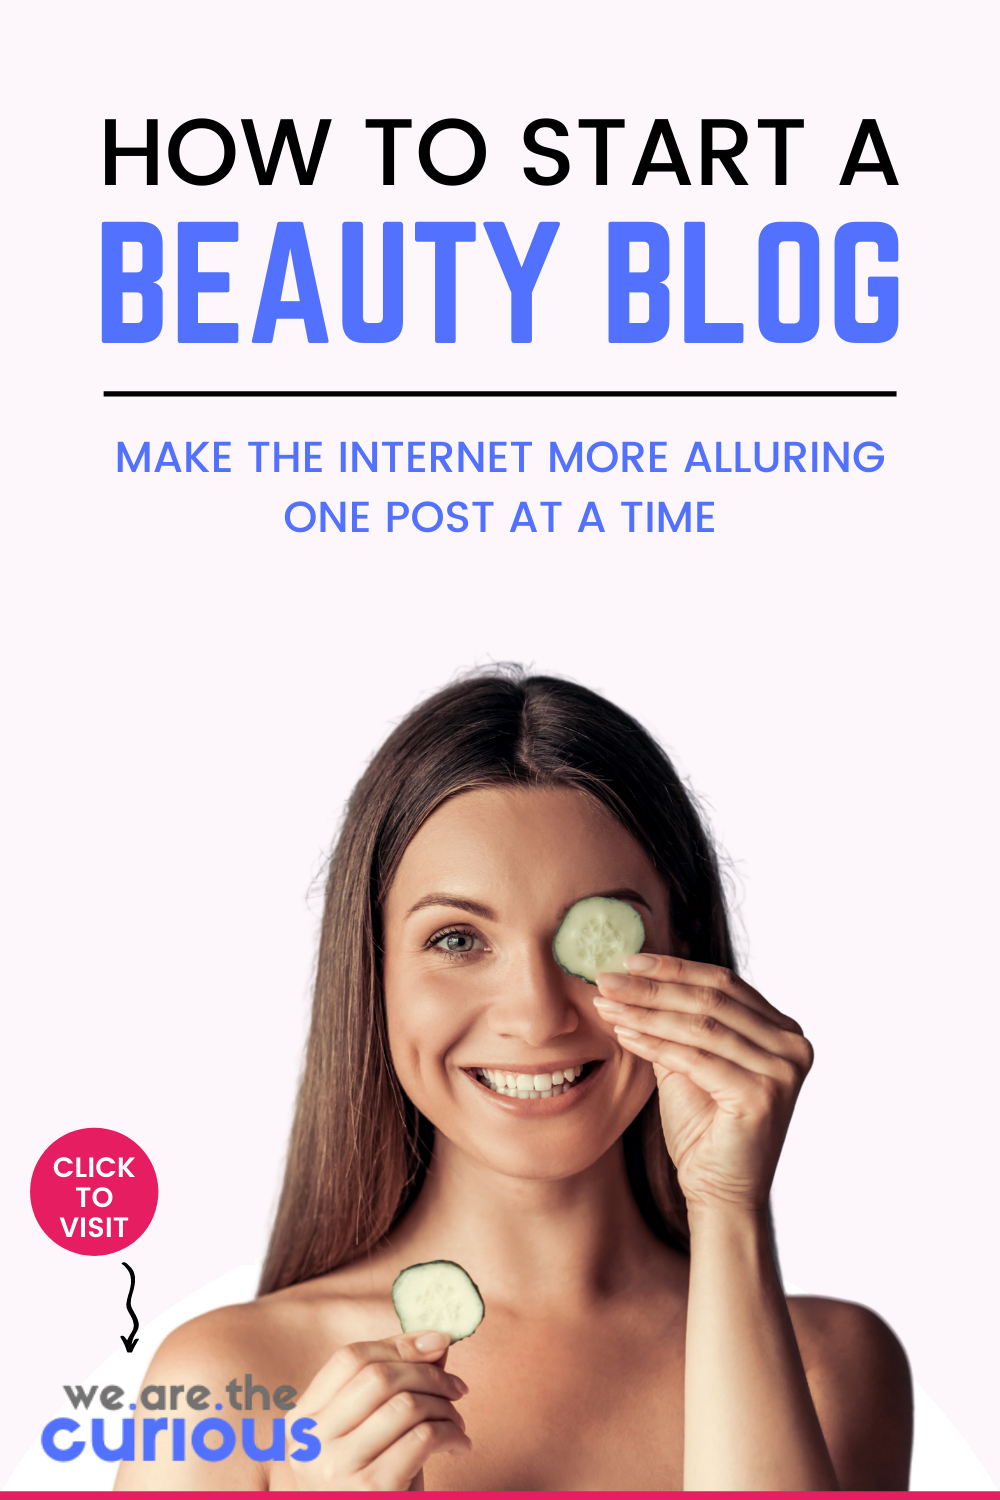 How to Start a Beauty Blog: Make the Internet More